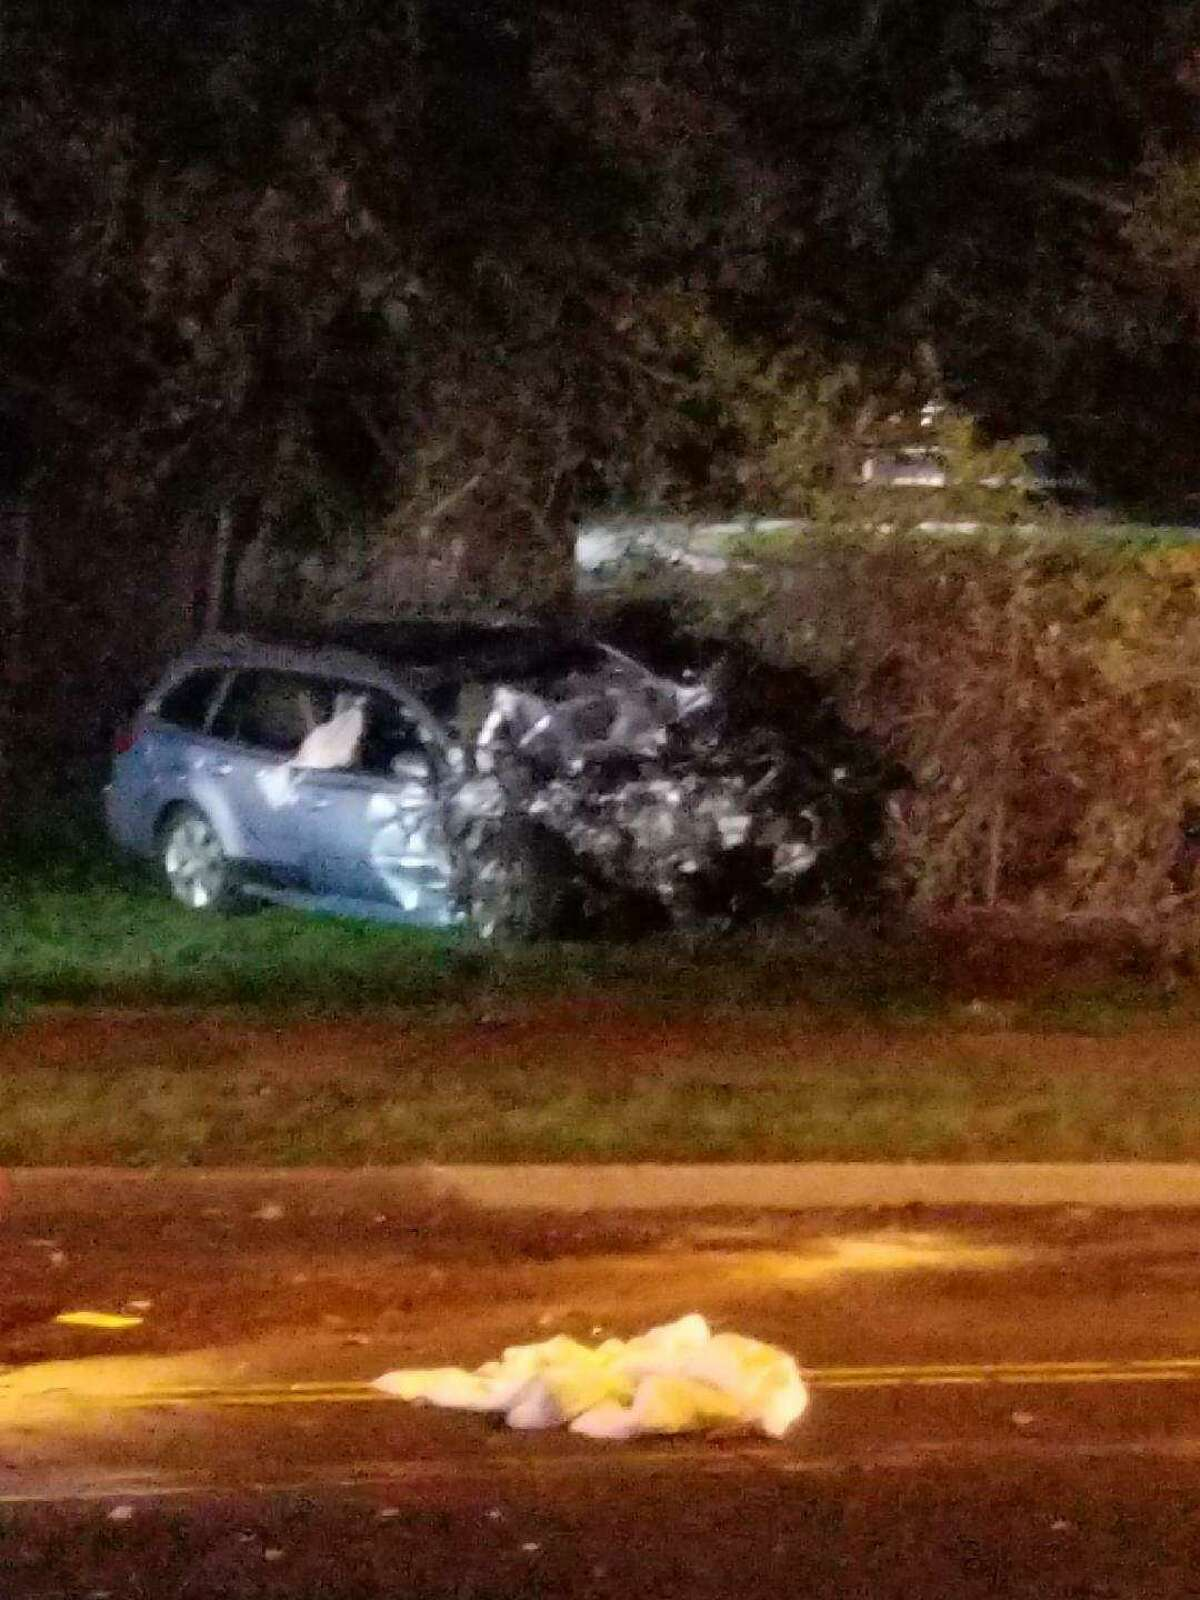 Phillip W. Hunt, 54, of Seymour, was killed after a car being pursued by police crashed into his vehicle late Thursday, police said.